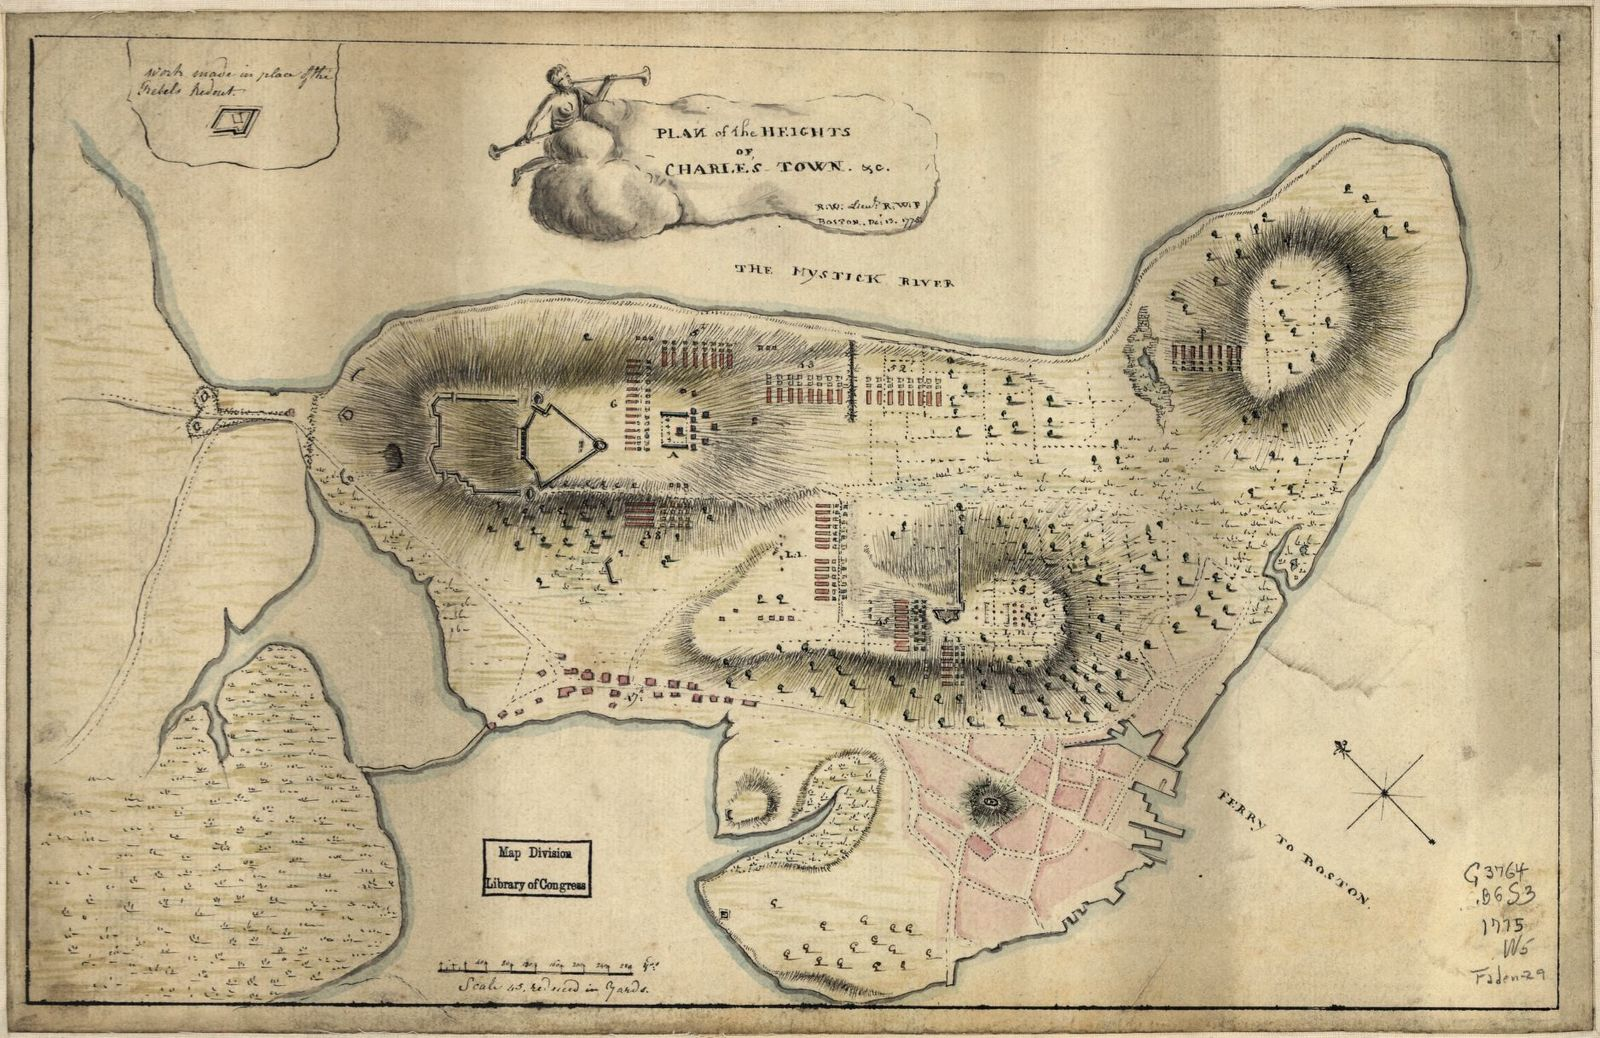 Plan of the heights of Charles Town, &c.